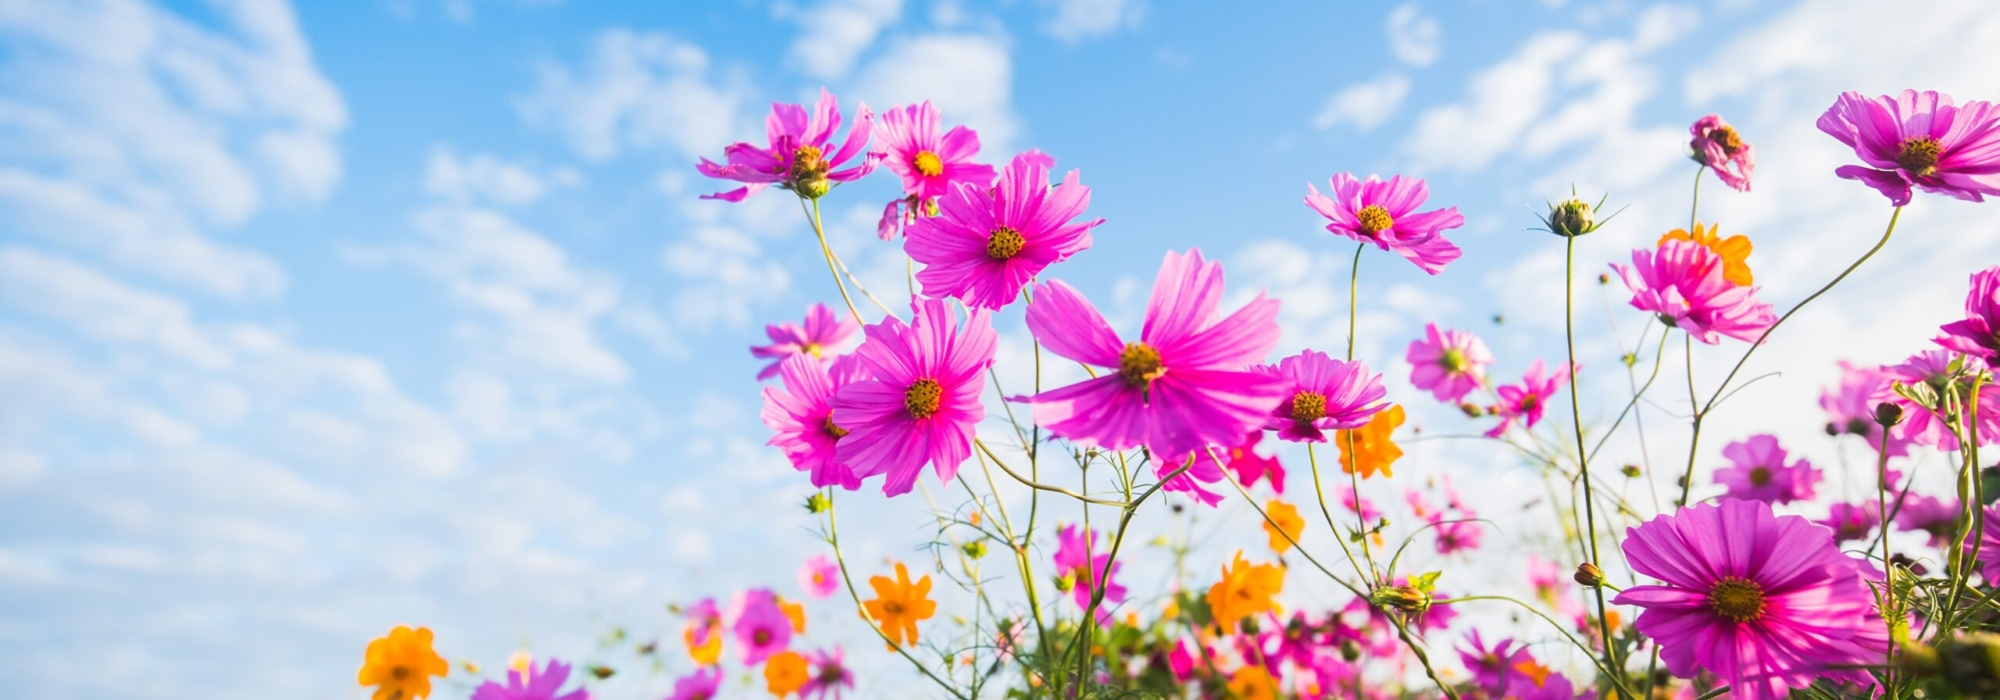 Cosmos_plant_Sky_Clouds_587191_3840x2400